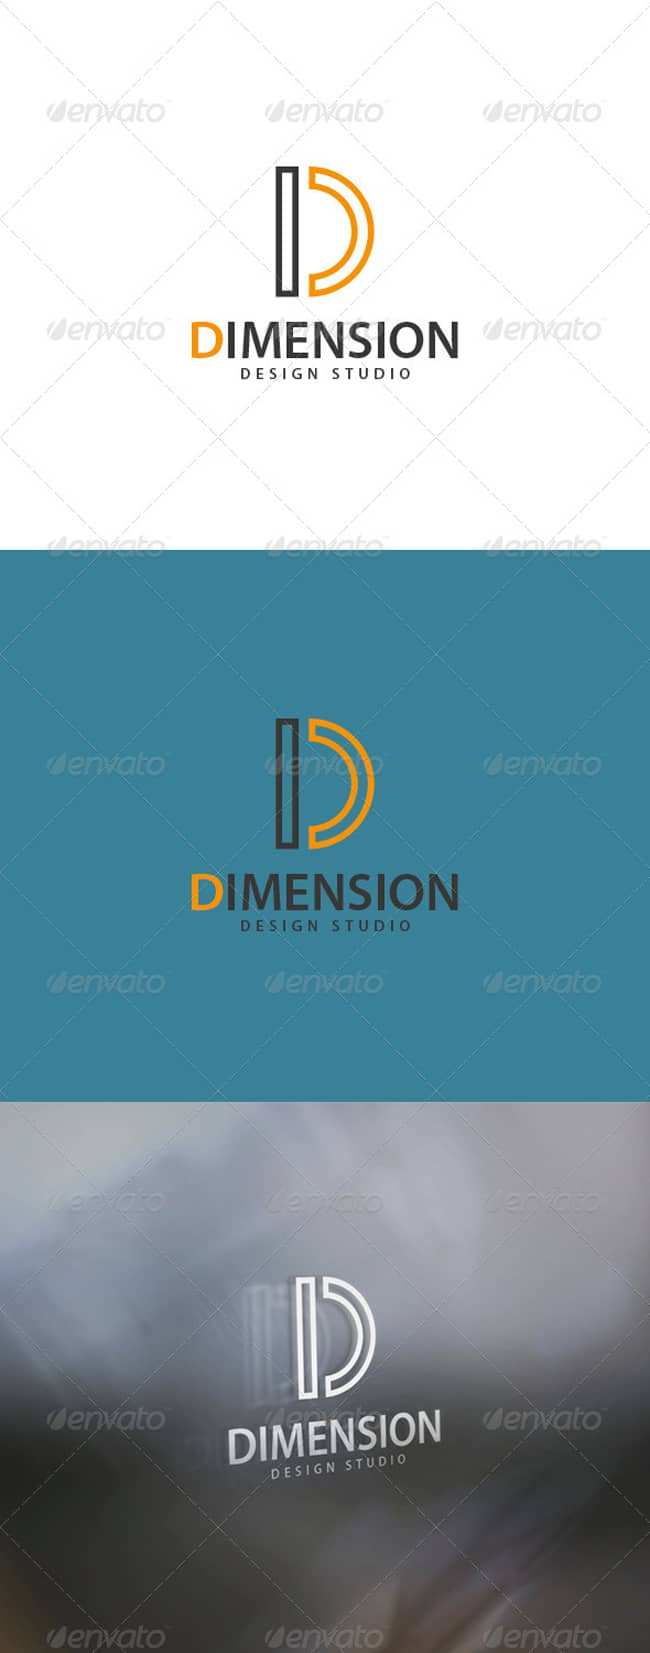 Dimension Logo